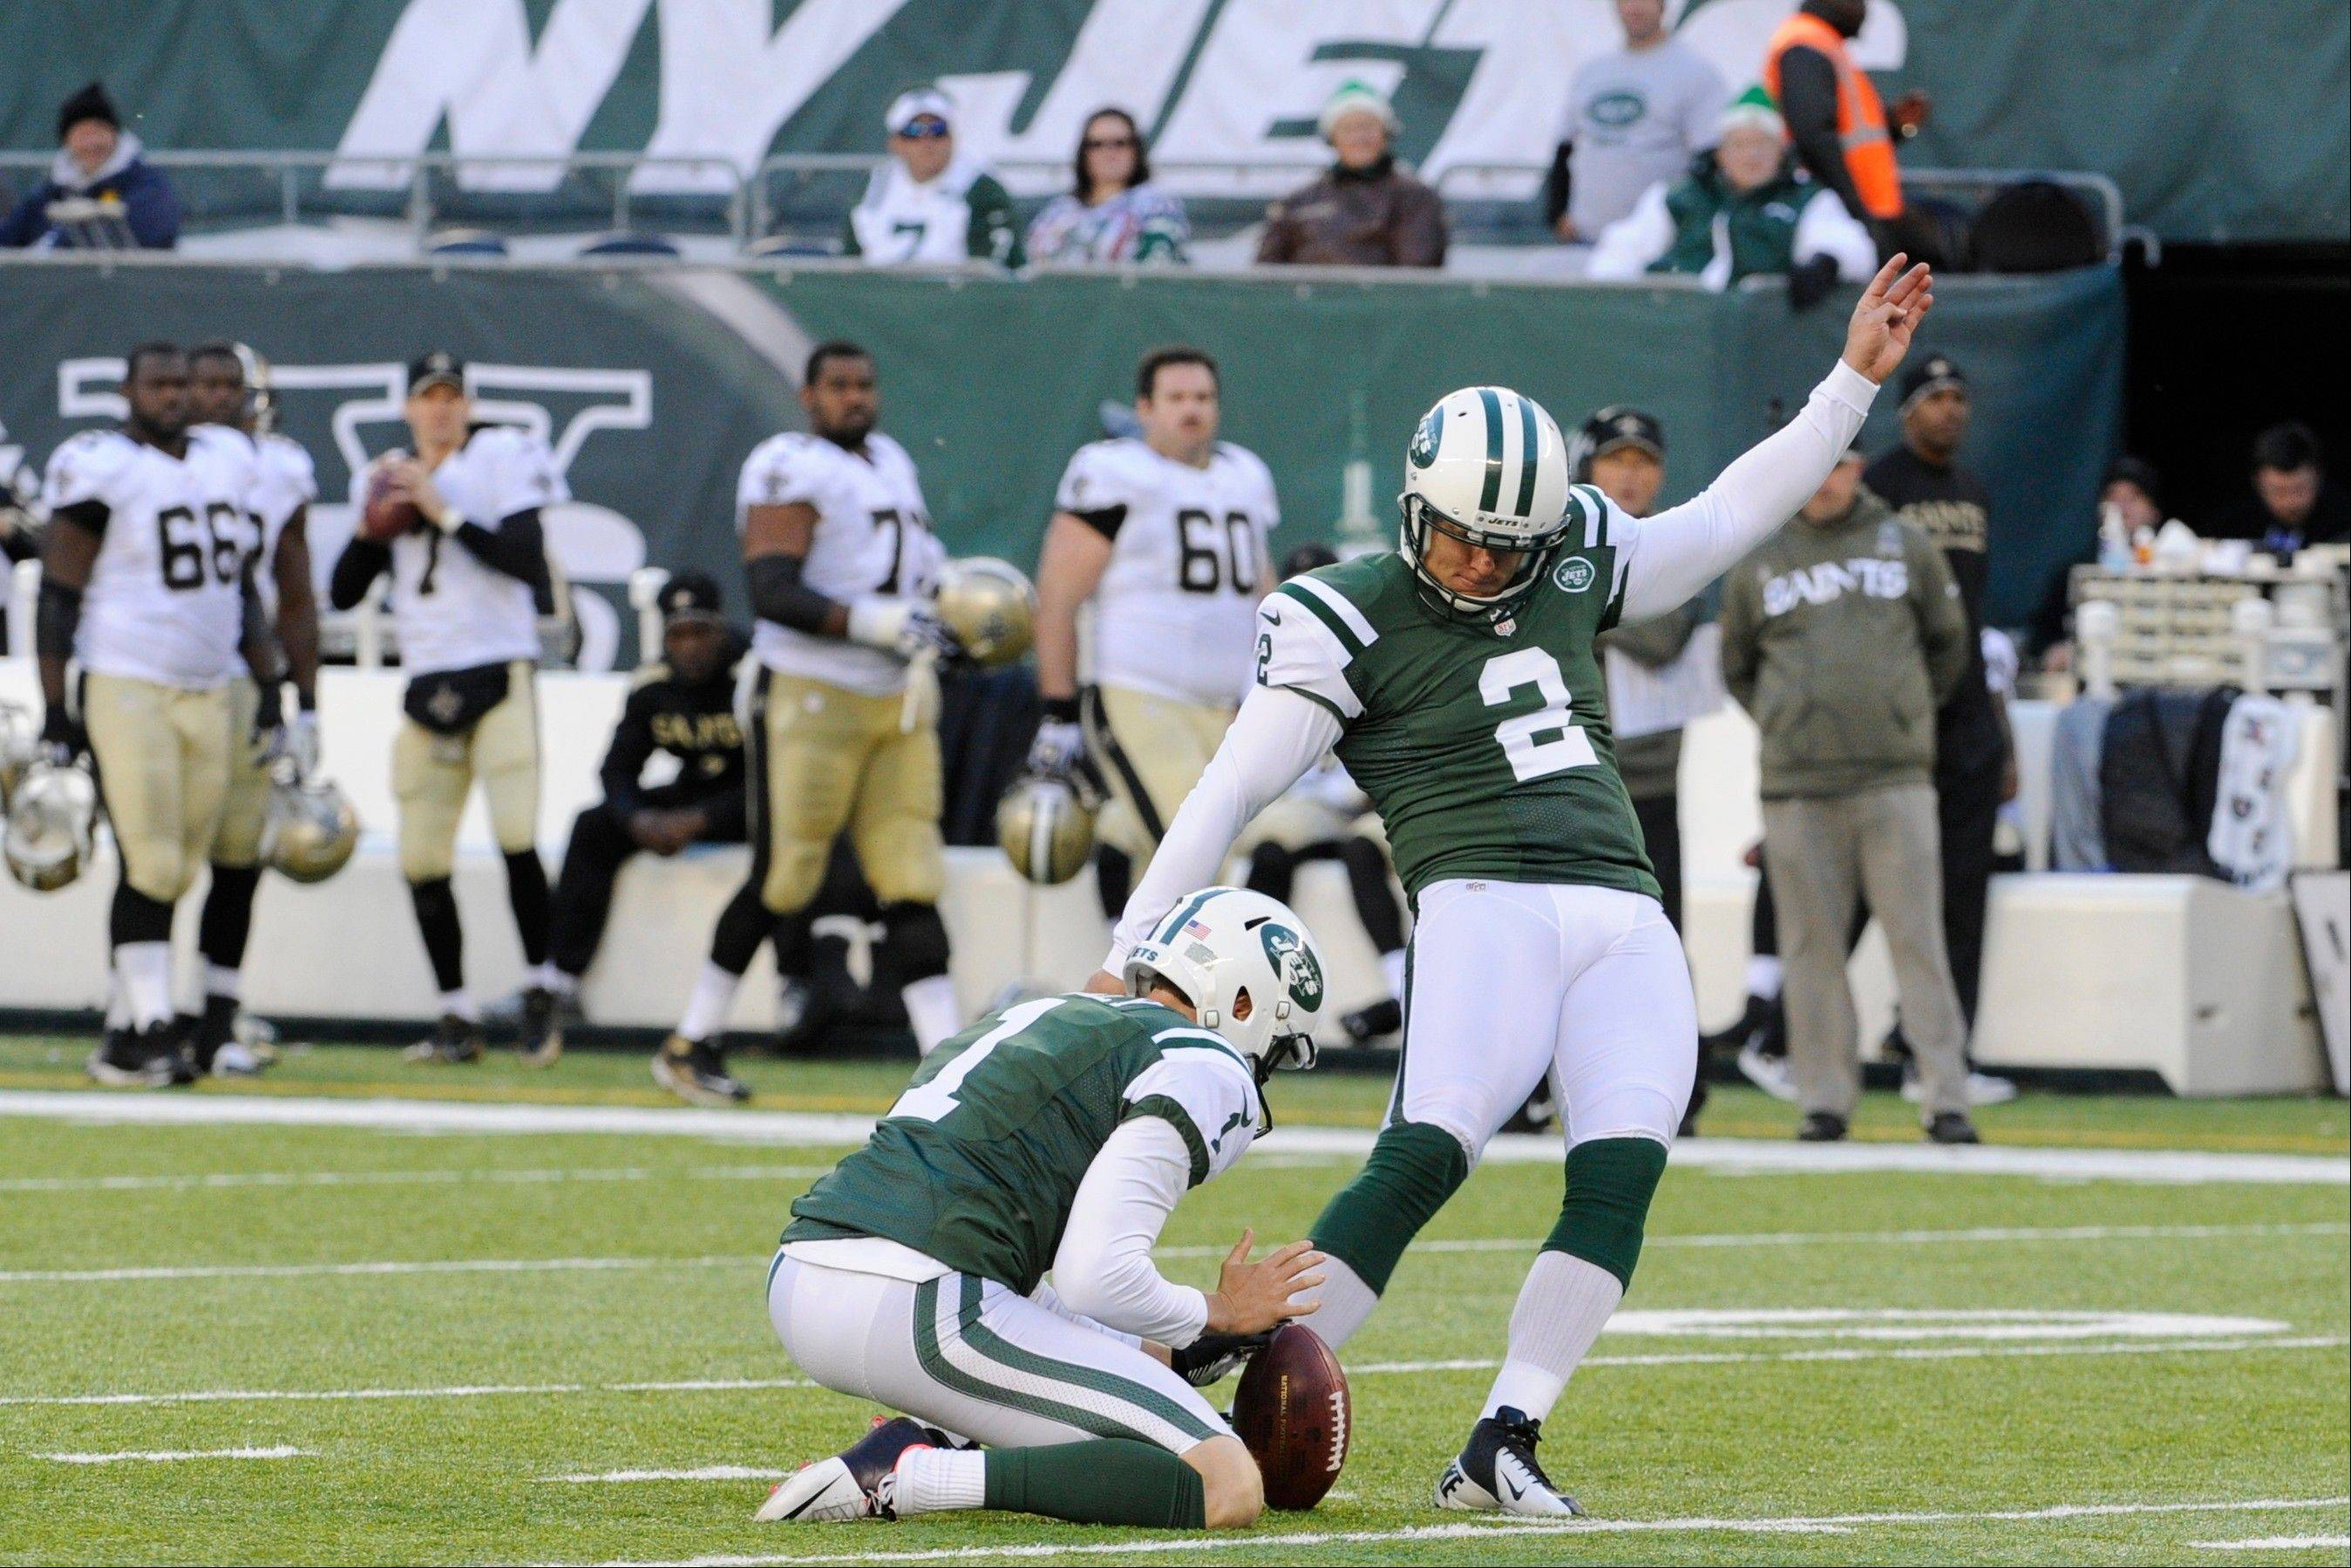 New York Jets kicker Nick Folk (2) kicks a field goal during the second half of an NFL football game against the New Orleans Saints Sunday, Nov. 3, 2013, in East Rutherford, N.J.